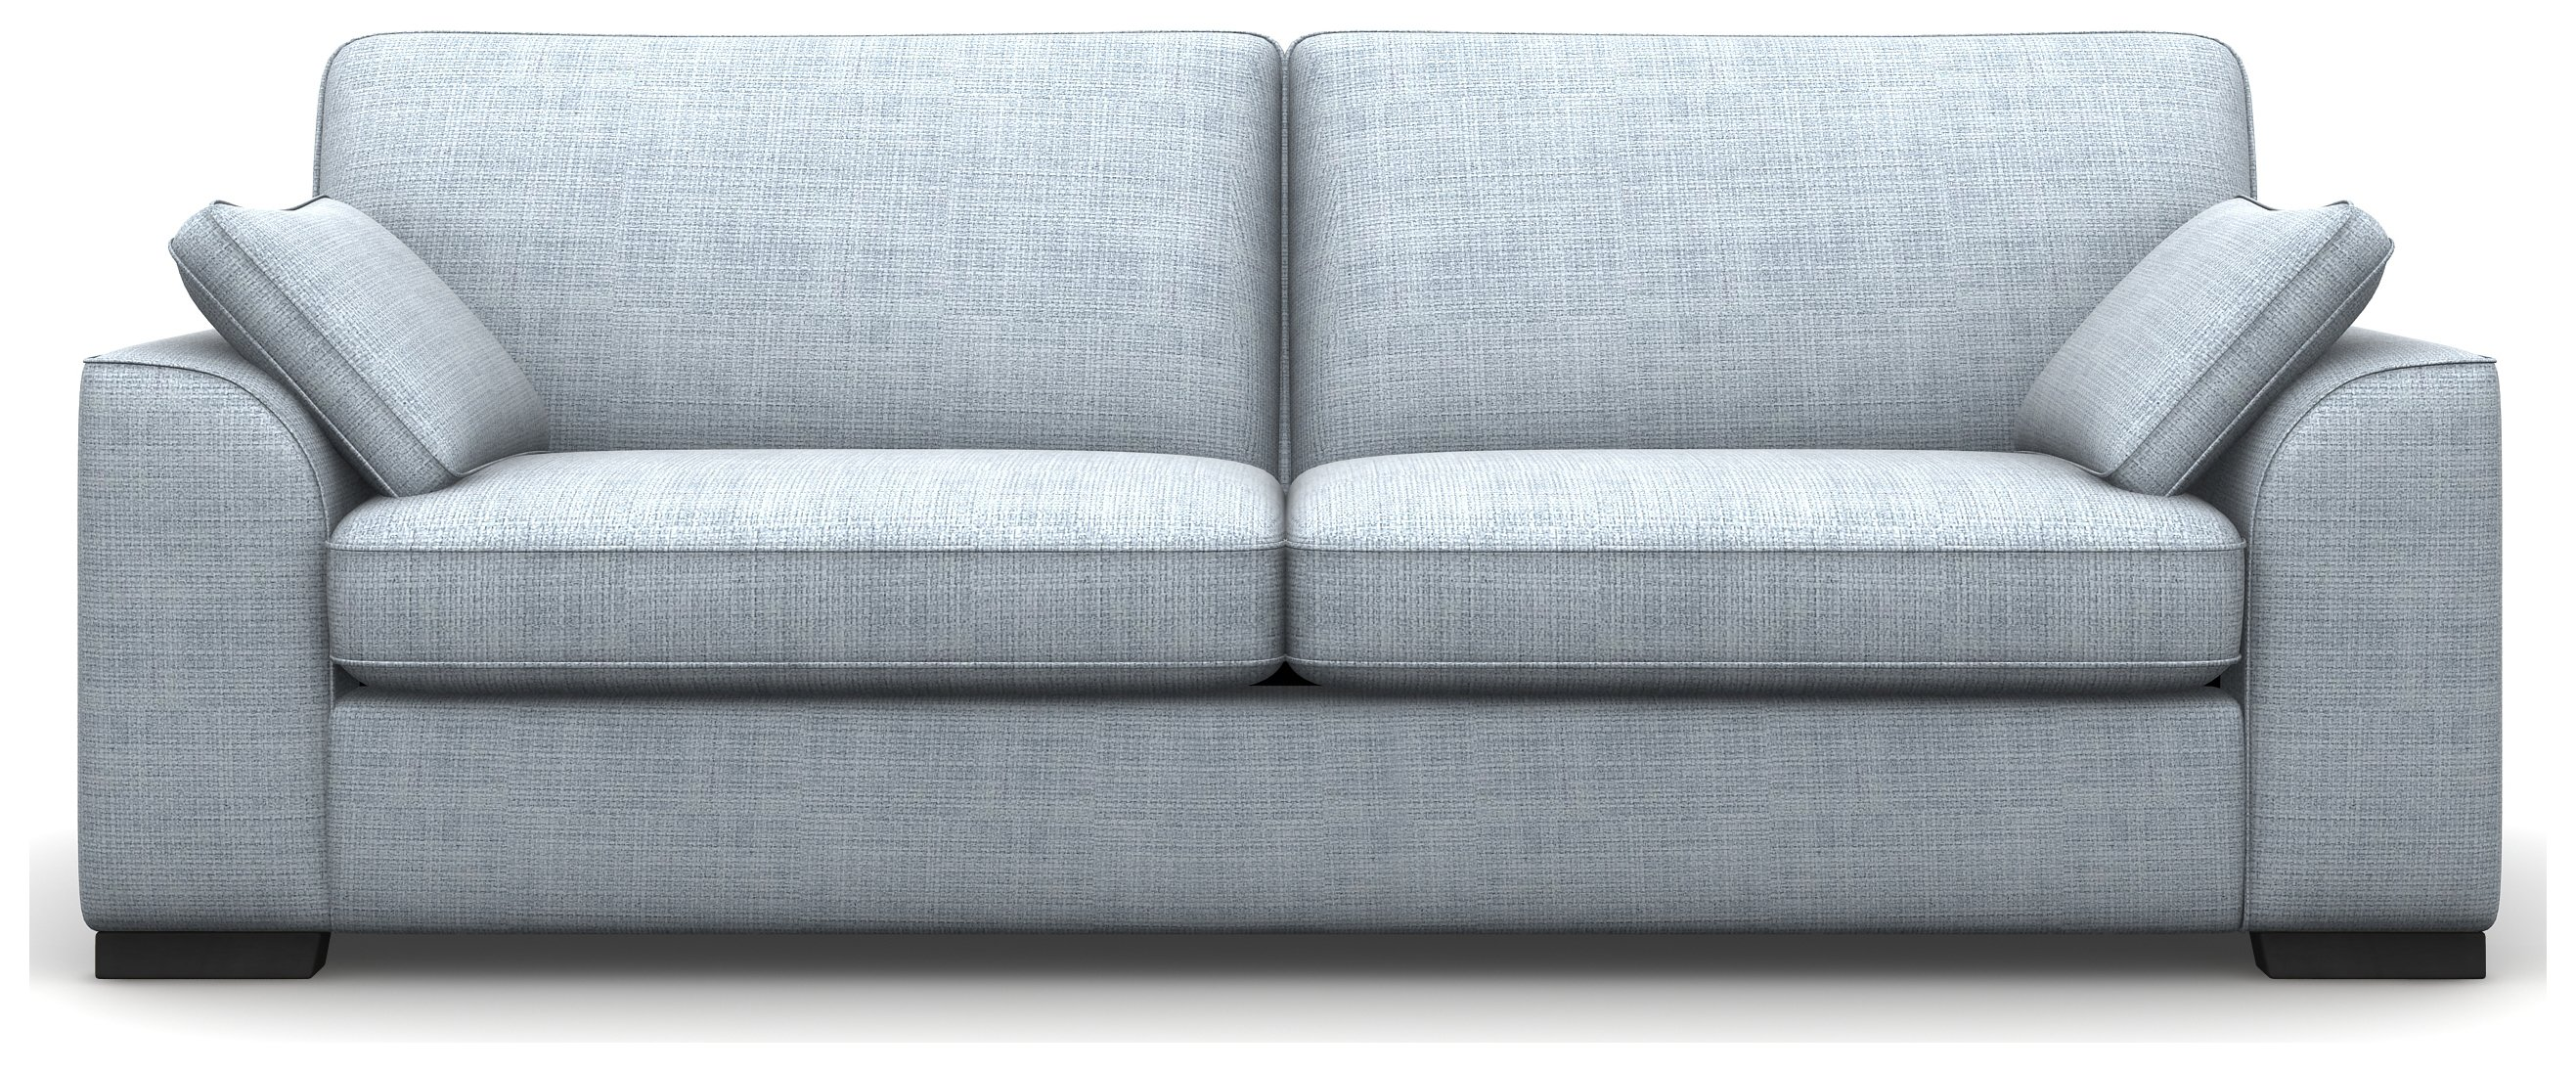 Heart of House Lincoln 4 Seater Fabric Sofa - Sky Blue